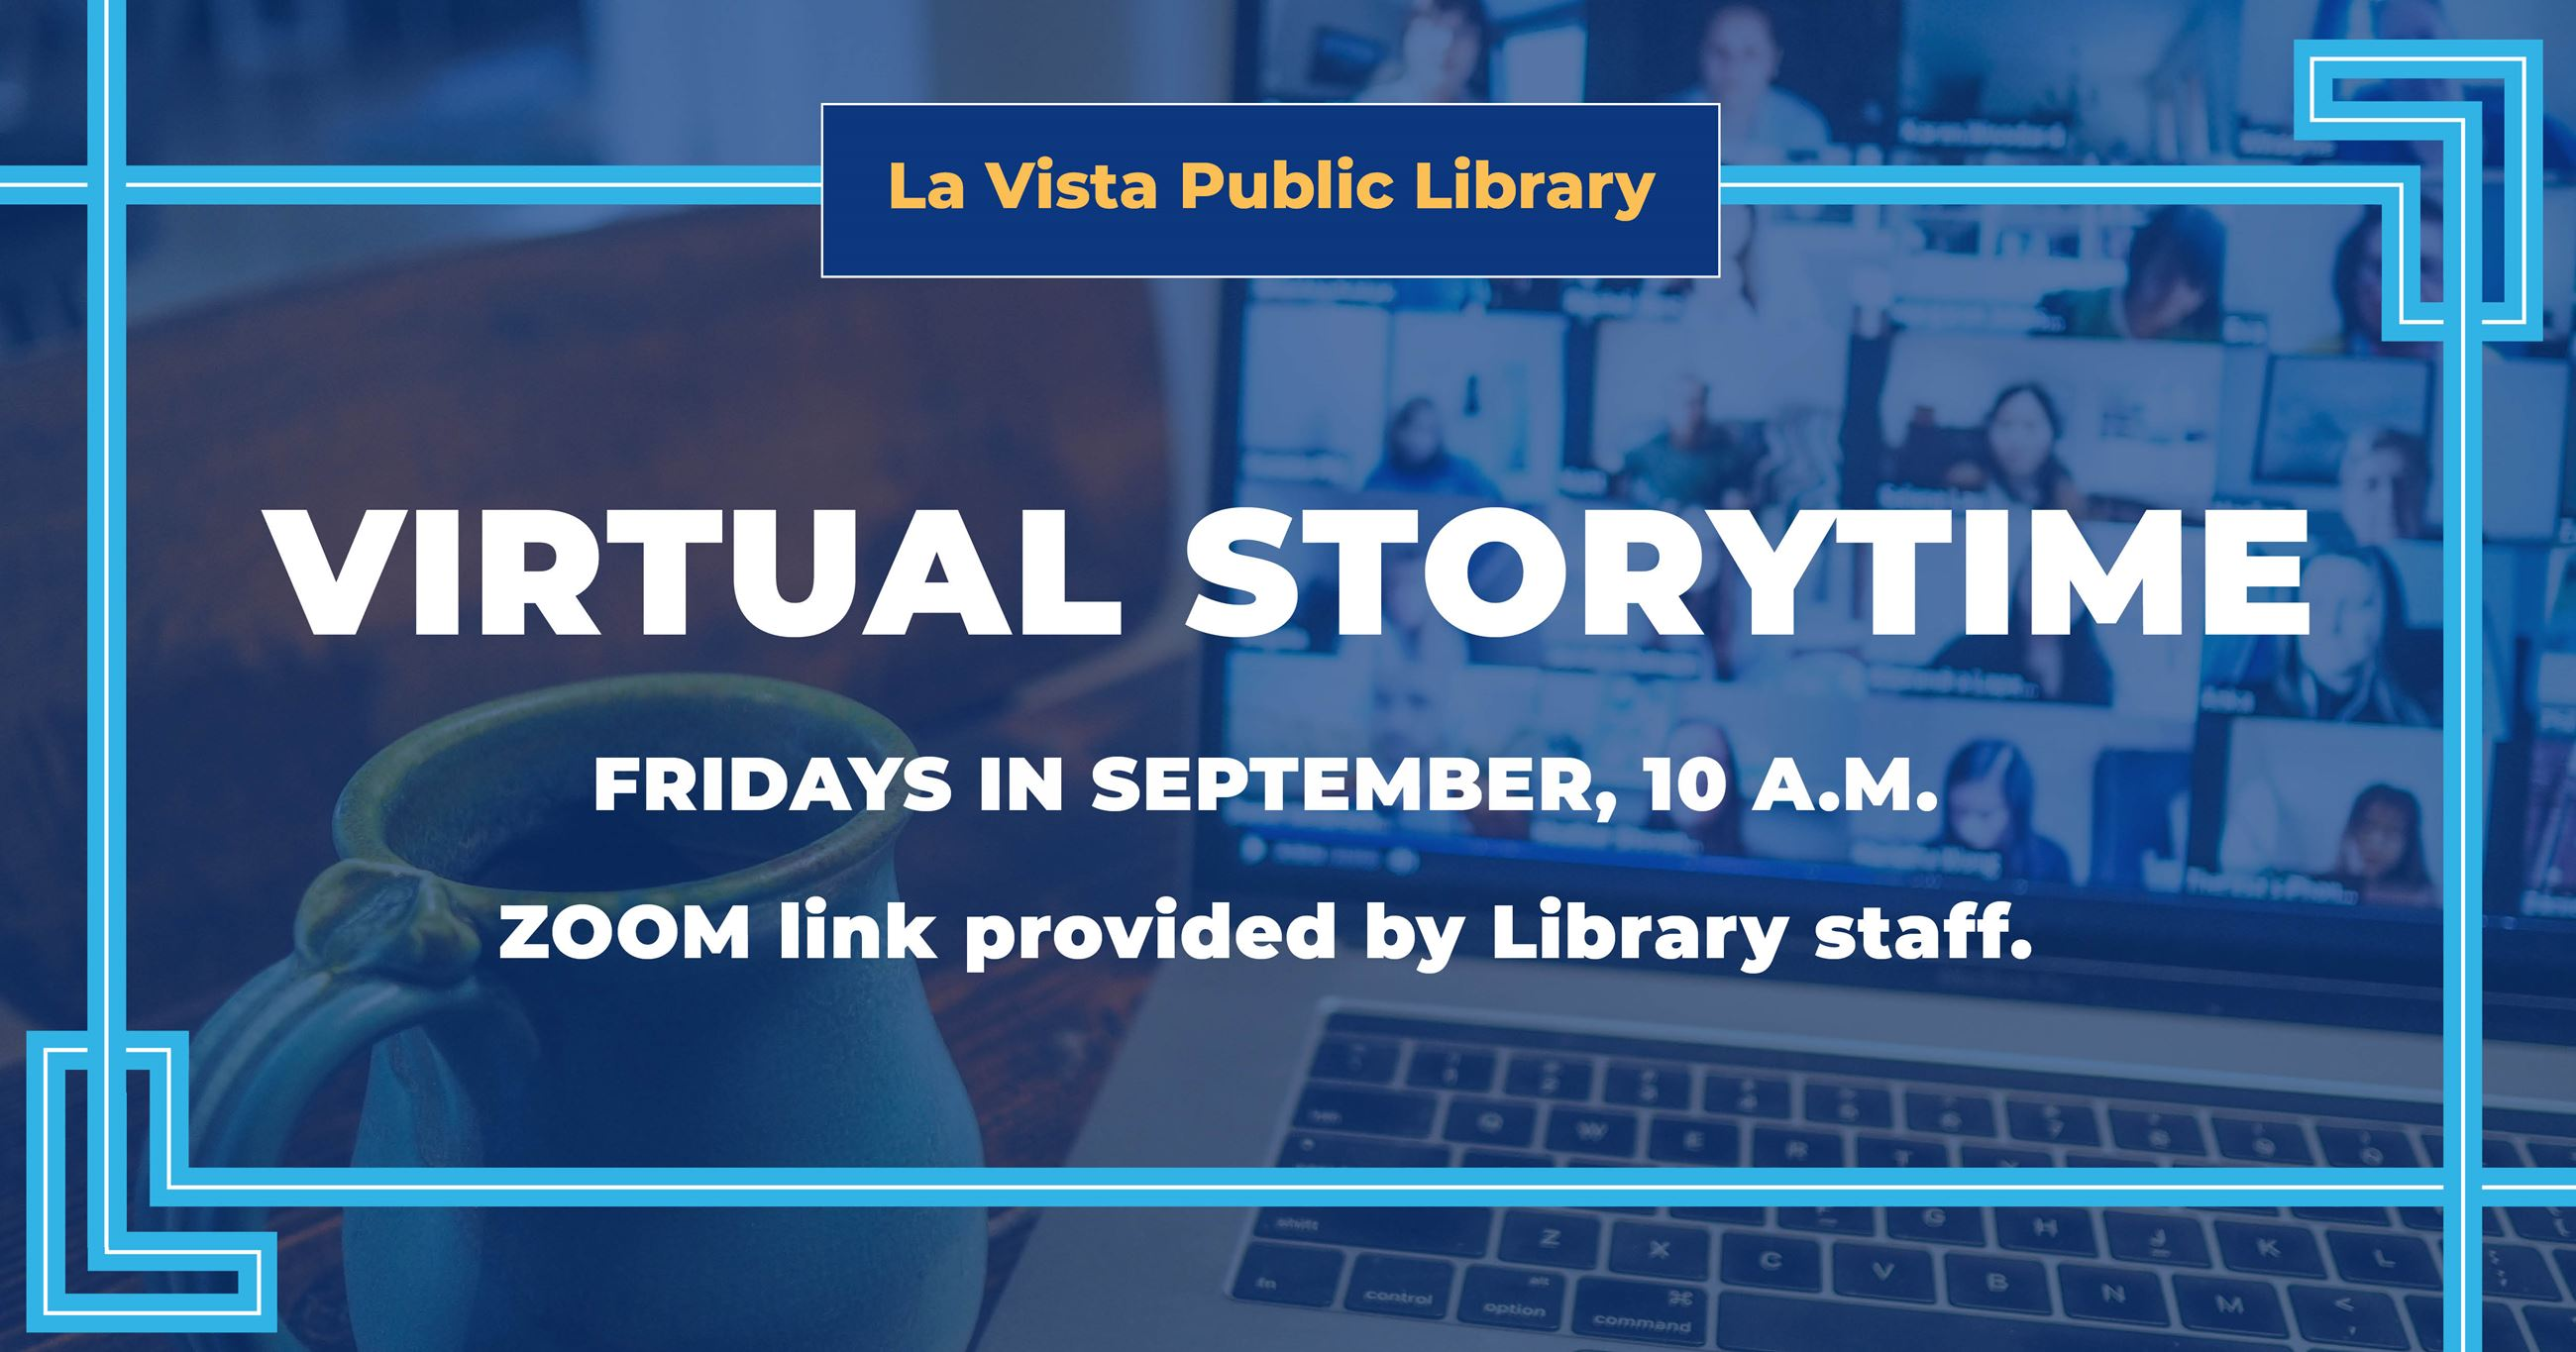 FACEBOOK Friday Virtual Storytime